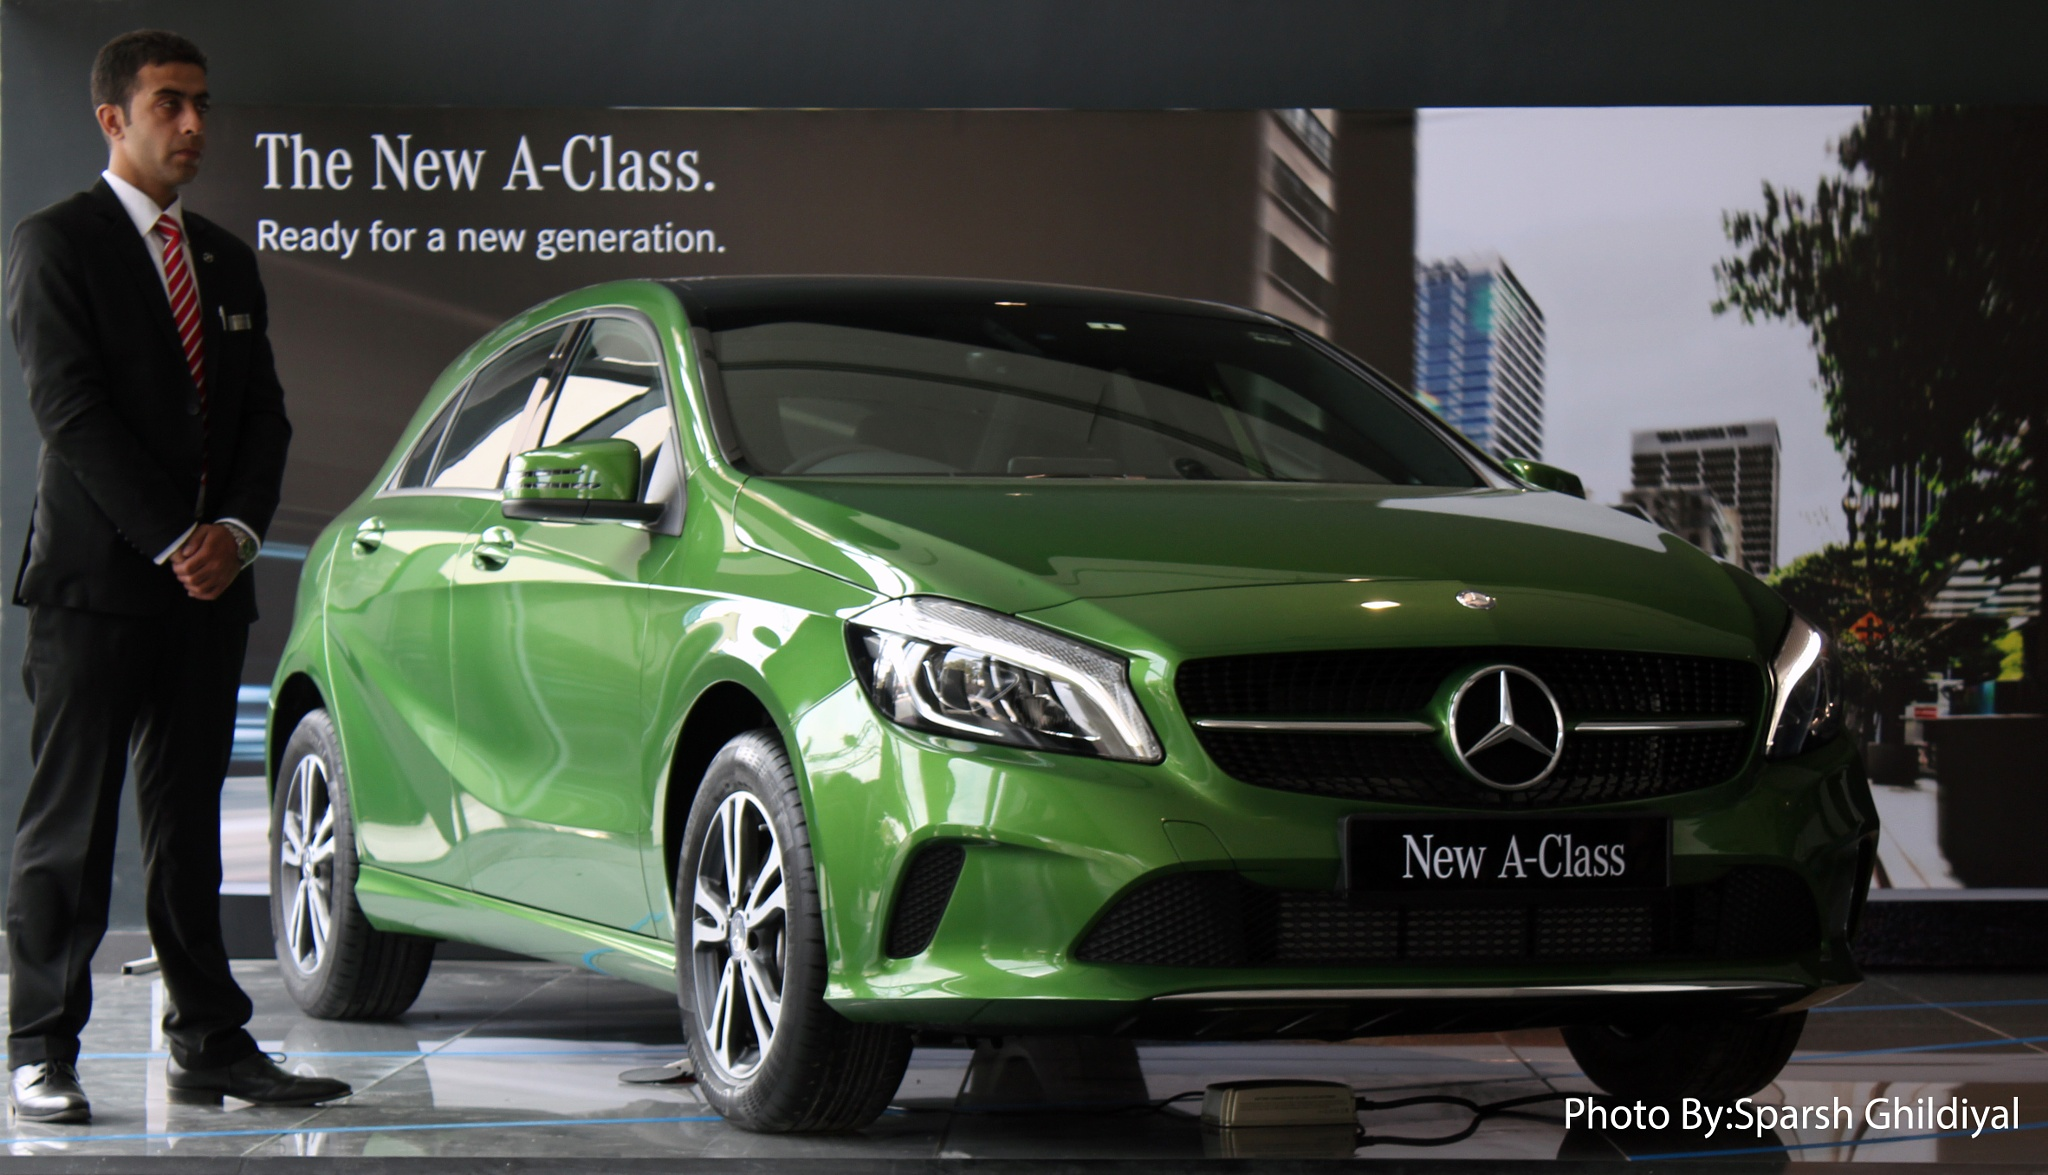 The New A class by Sparsh Johnny Ghildiyal